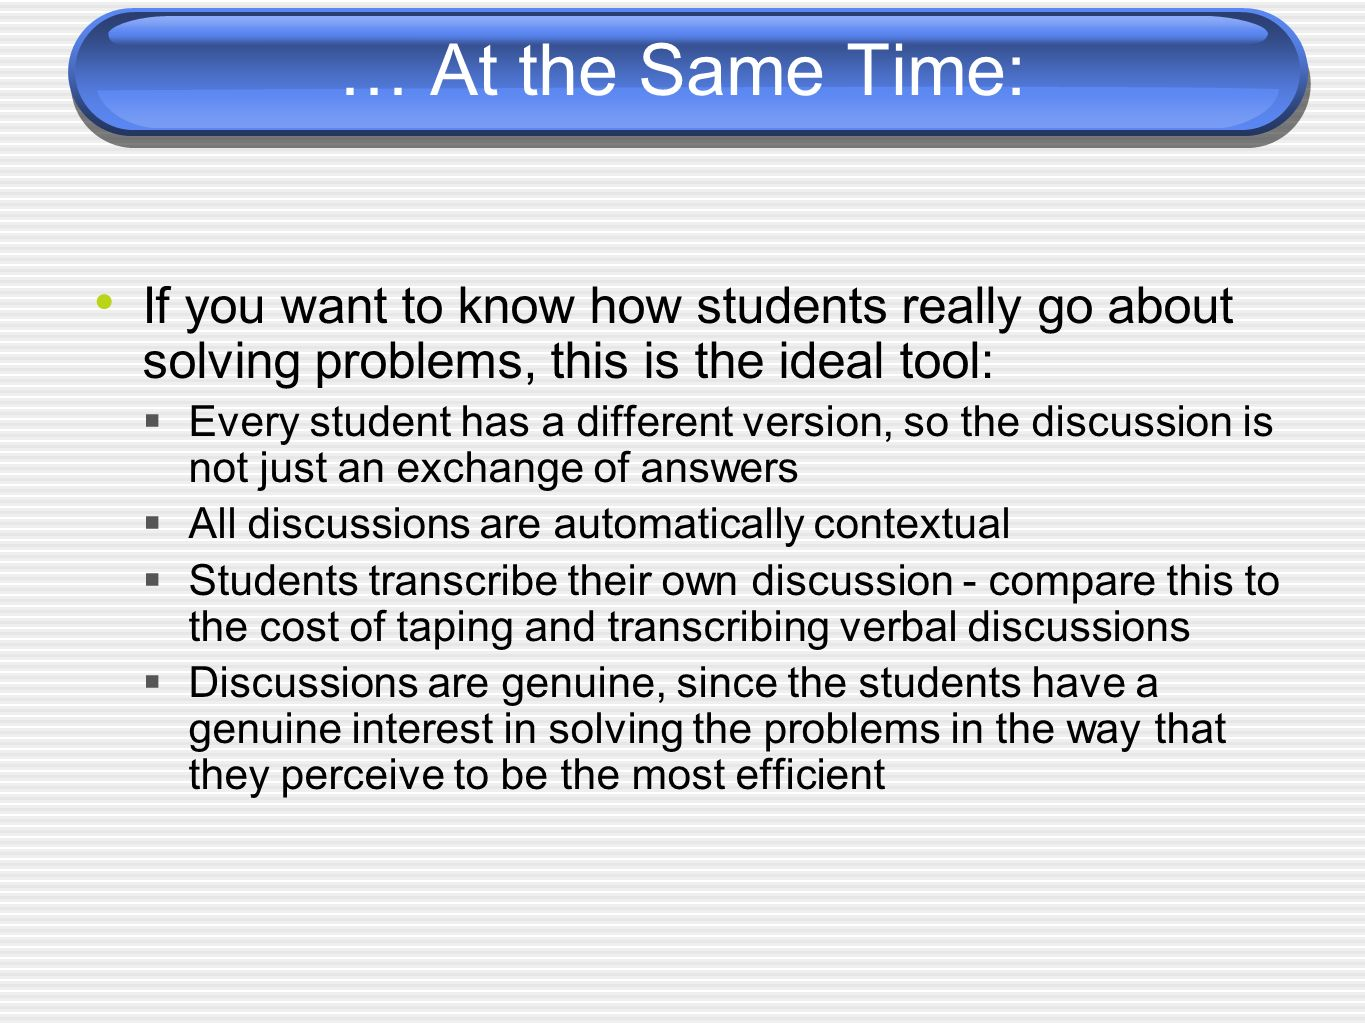 … At the Same Time: If you want to know how students really go about solving problems, this is the ideal tool: Every student has a different version, so the discussion is not just an exchange of answers All discussions are automatically contextual Students transcribe their own discussion - compare this to the cost of taping and transcribing verbal discussions Discussions are genuine, since the students have a genuine interest in solving the problems in the way that they perceive to be the most efficient